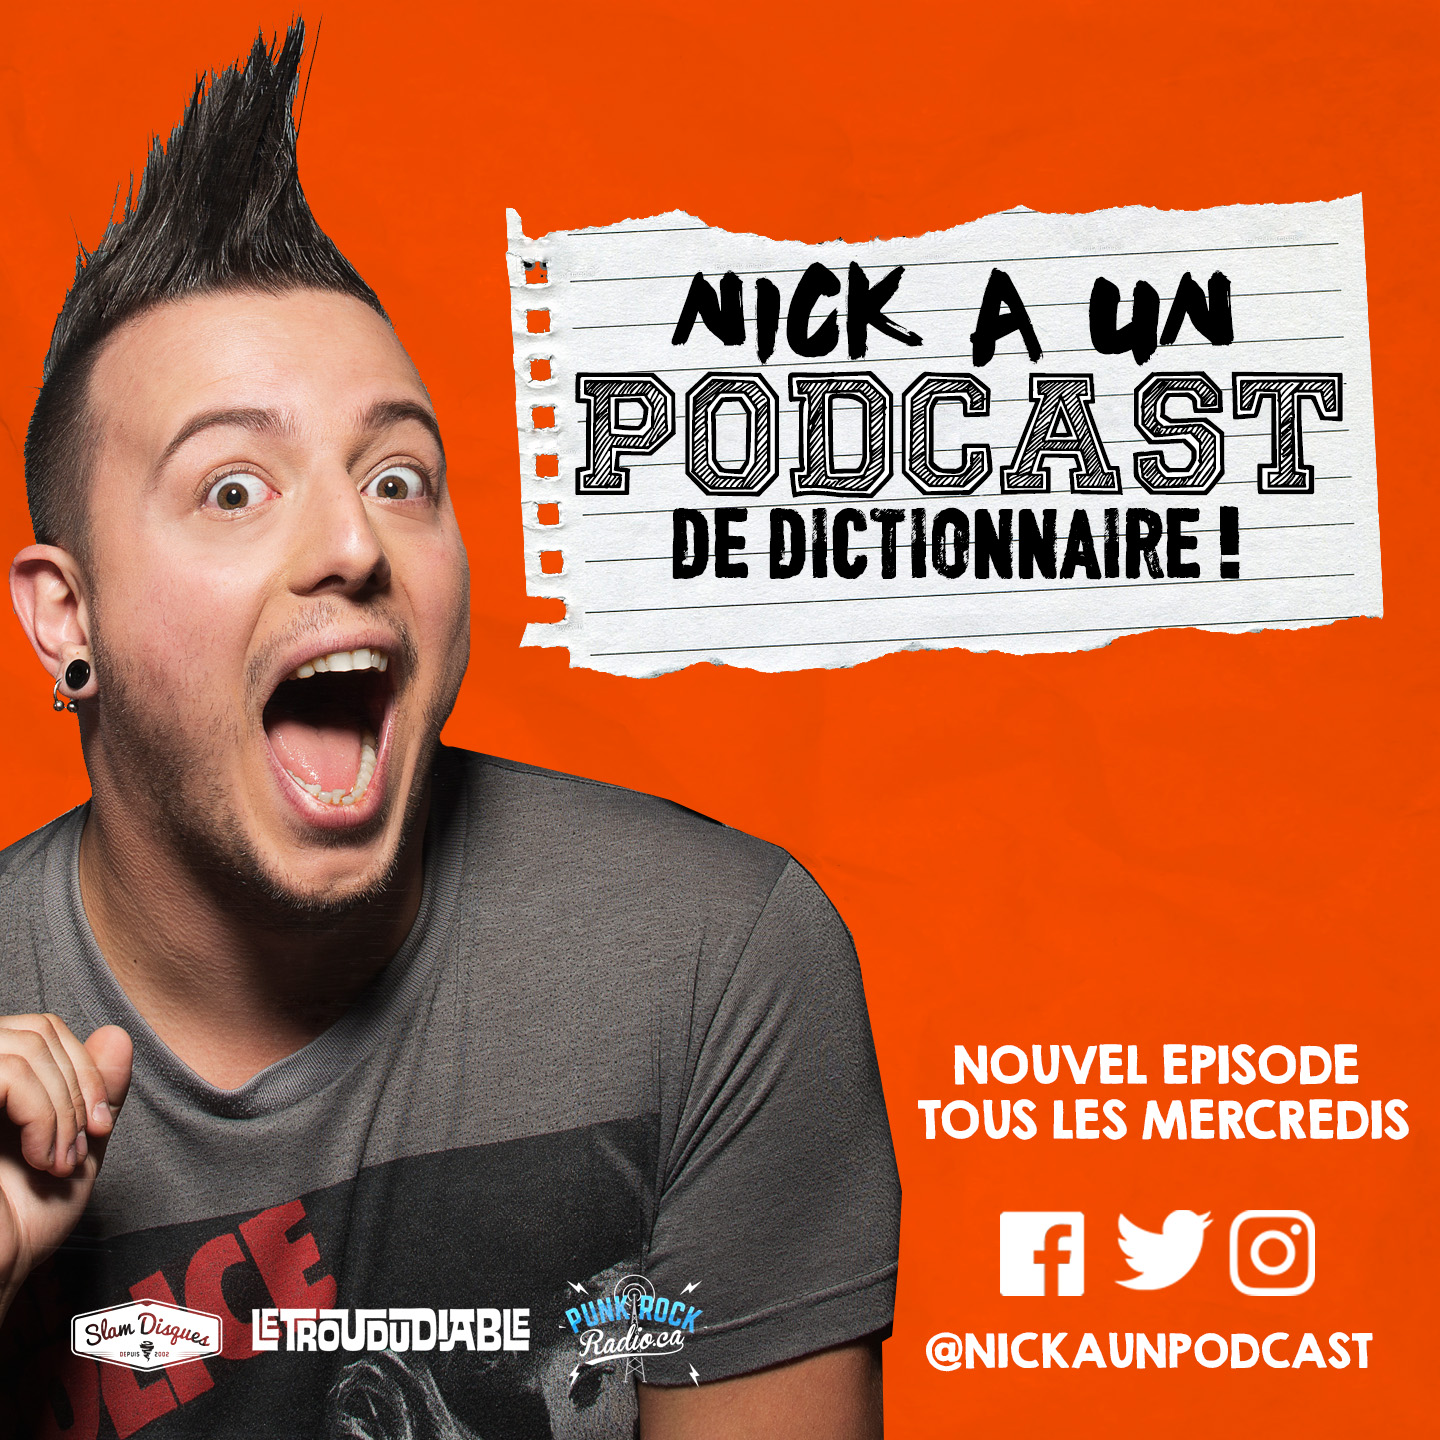 Nick a un Podcast de Dictionnaire!